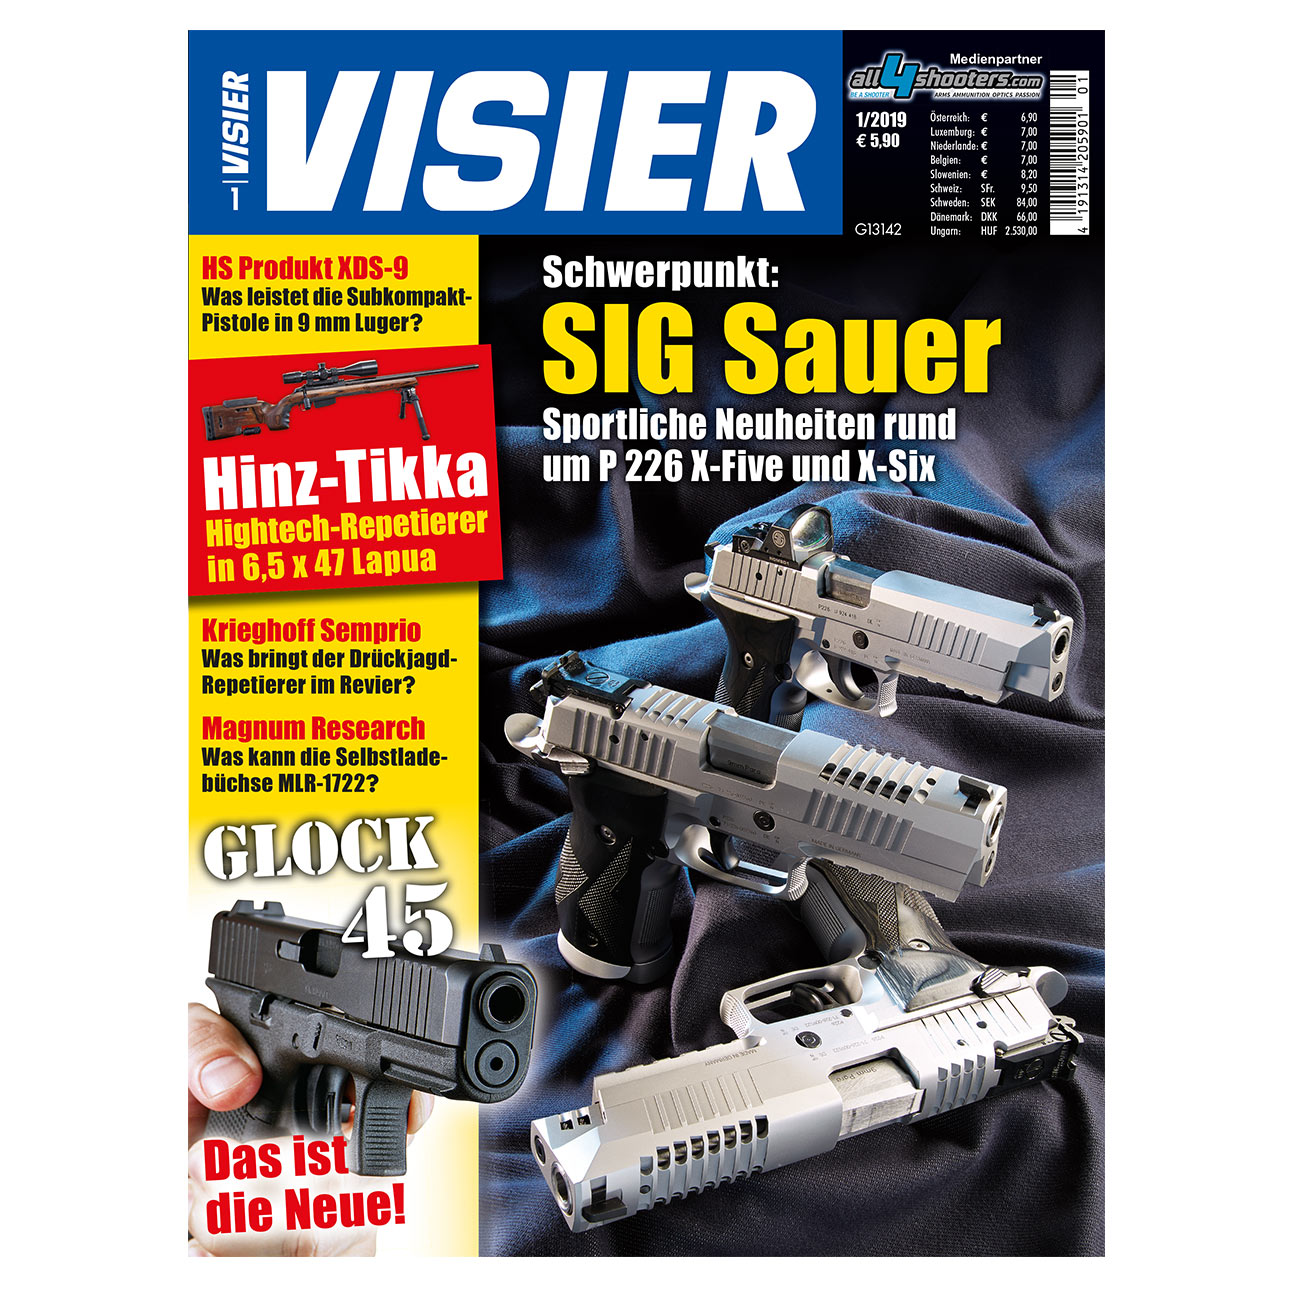 Visier - Das internationale Waffenmagazin 01/2019 0